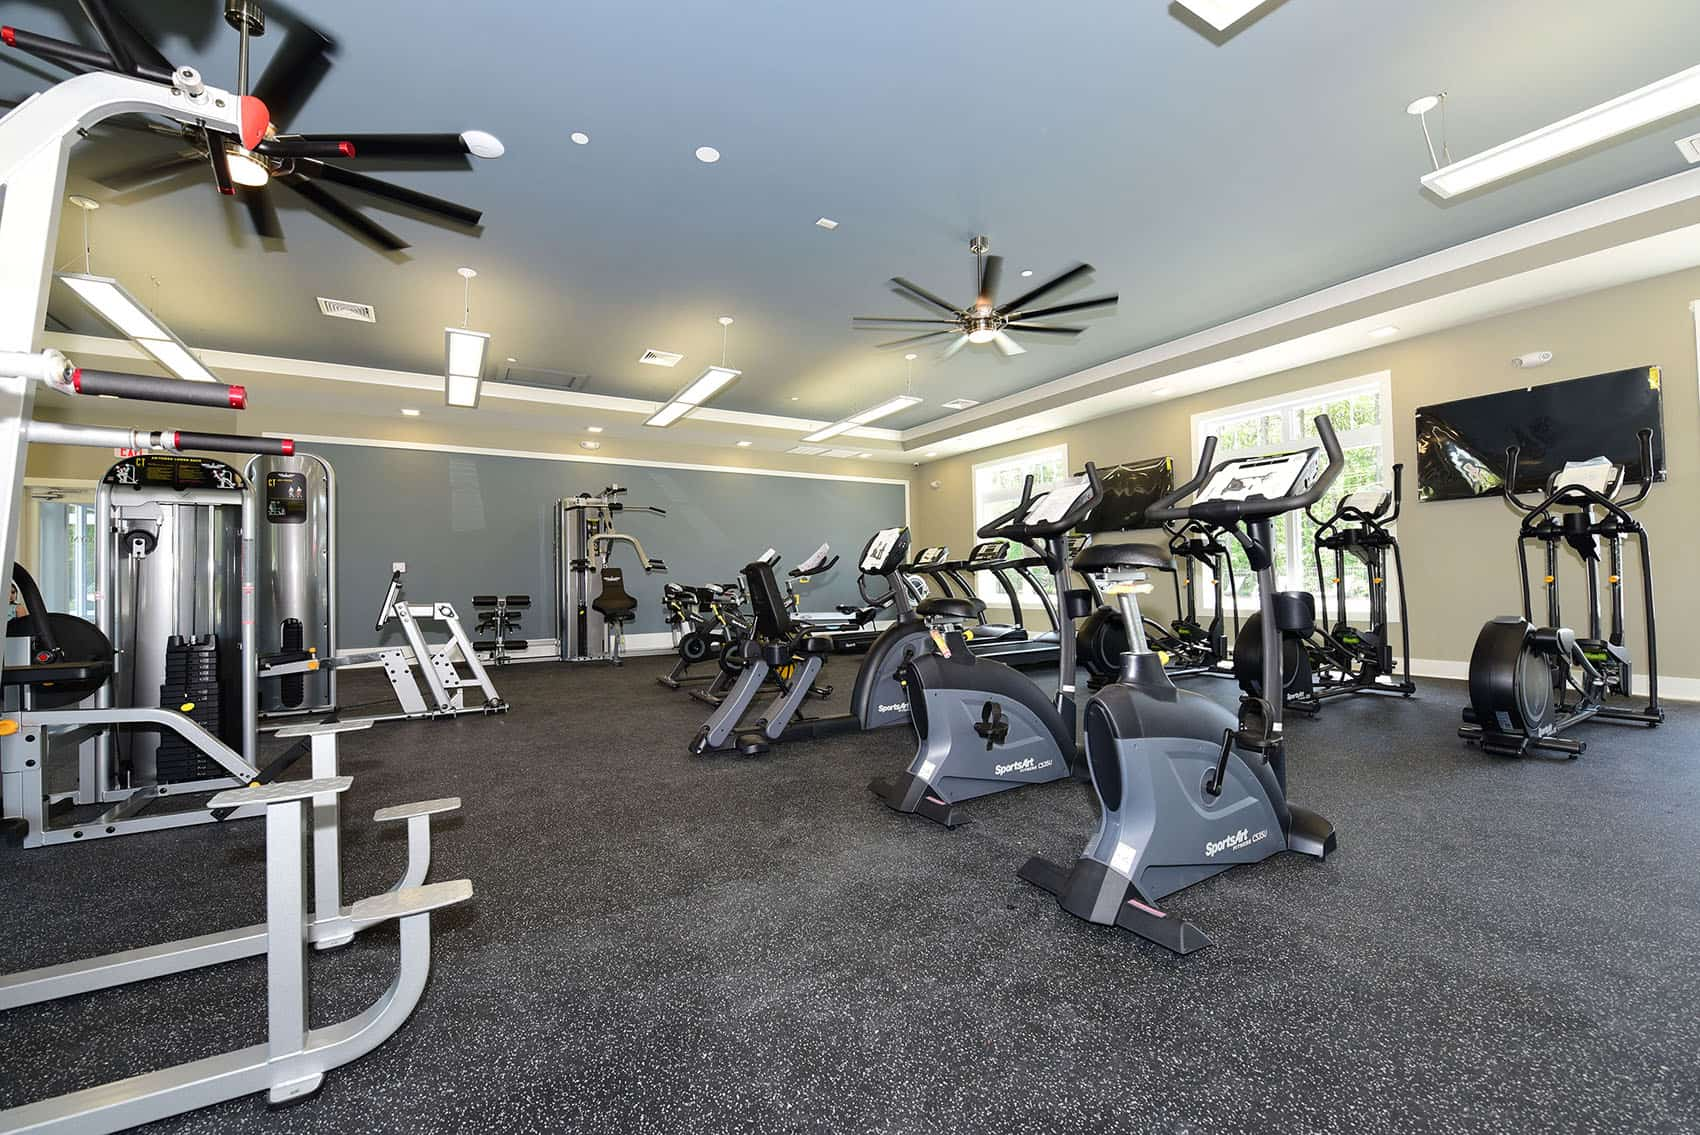 Gym area with weight machines and cardio equipment at Gardens at Jackson 21 apartments in Jackson, NJ